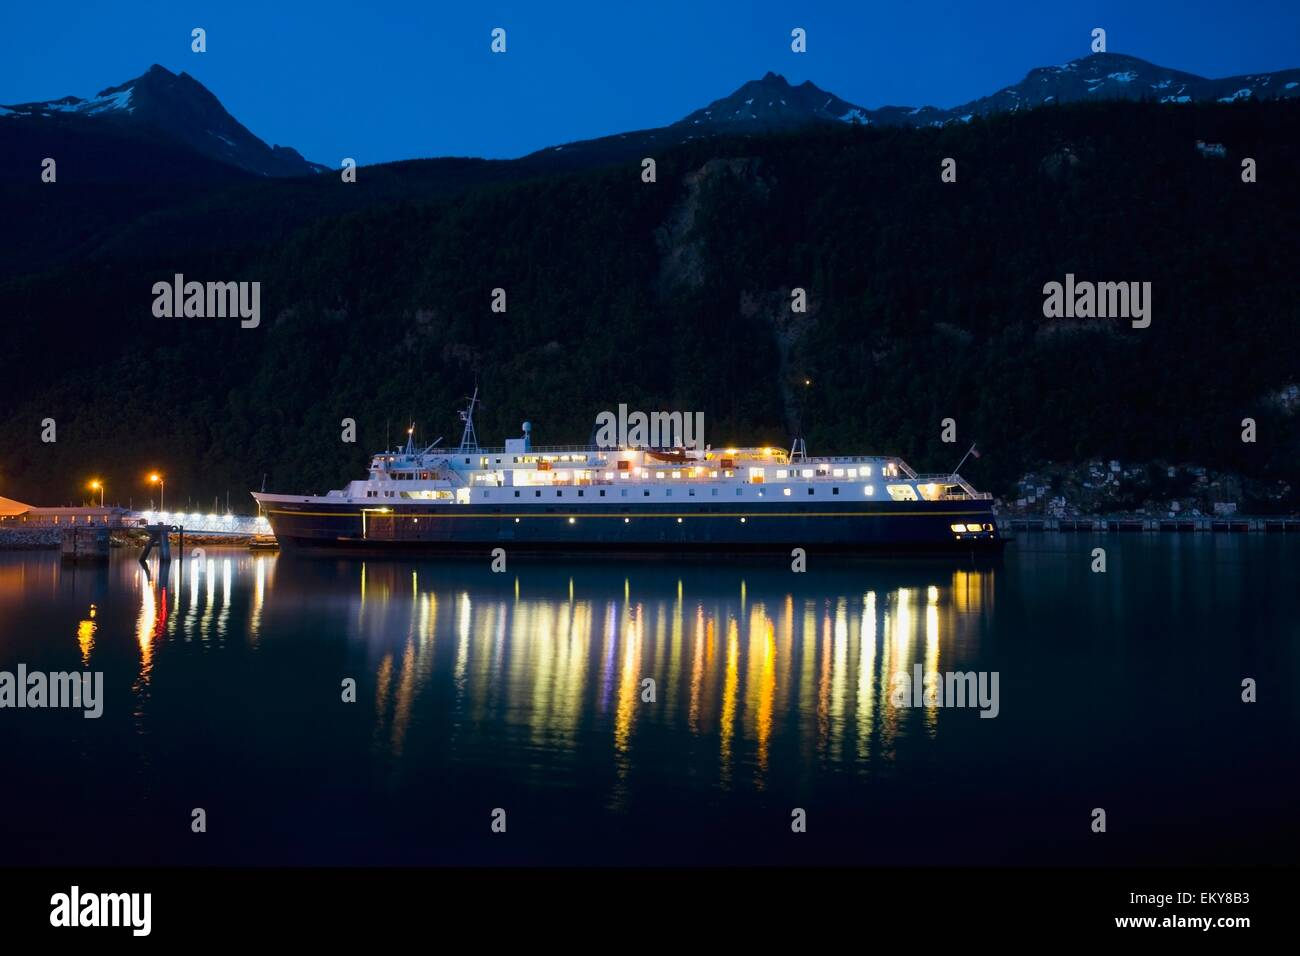 Skagway, Alaska, USA; The Alaska Ferry Surrounded By The Chilkat Mountains In The Lynn Canal Of The Taiya Inlet - Stock Image